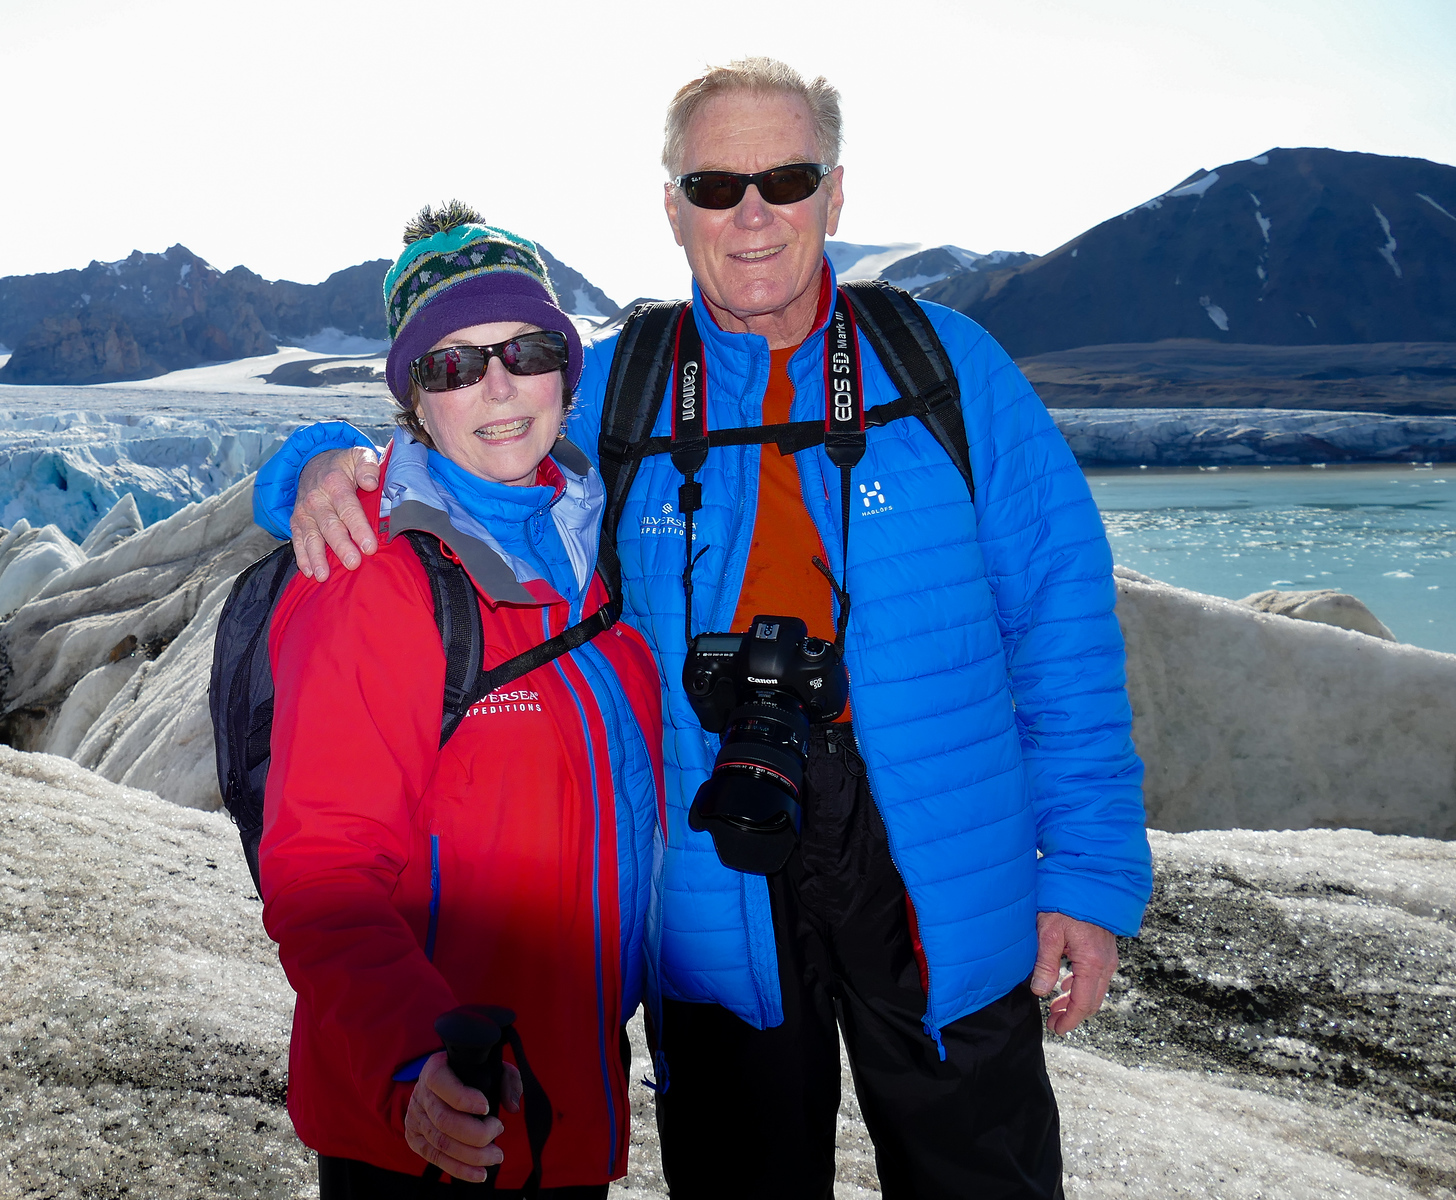 Woman wearing a red jacket and man wearing blue jacket on a glacier hike.